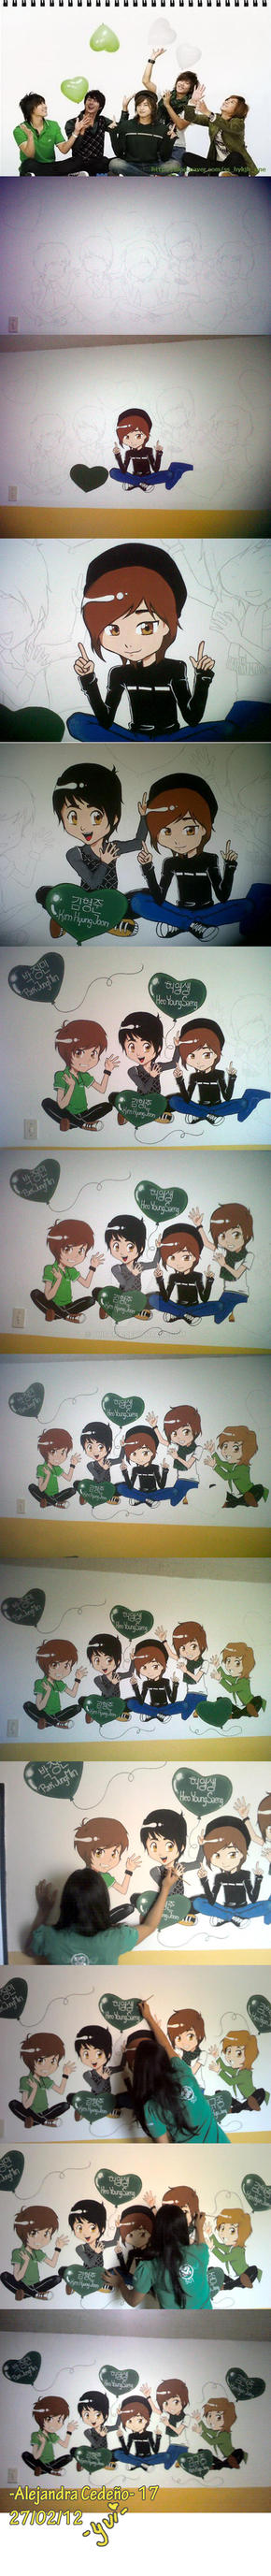 My SS501's Wall by yuisama